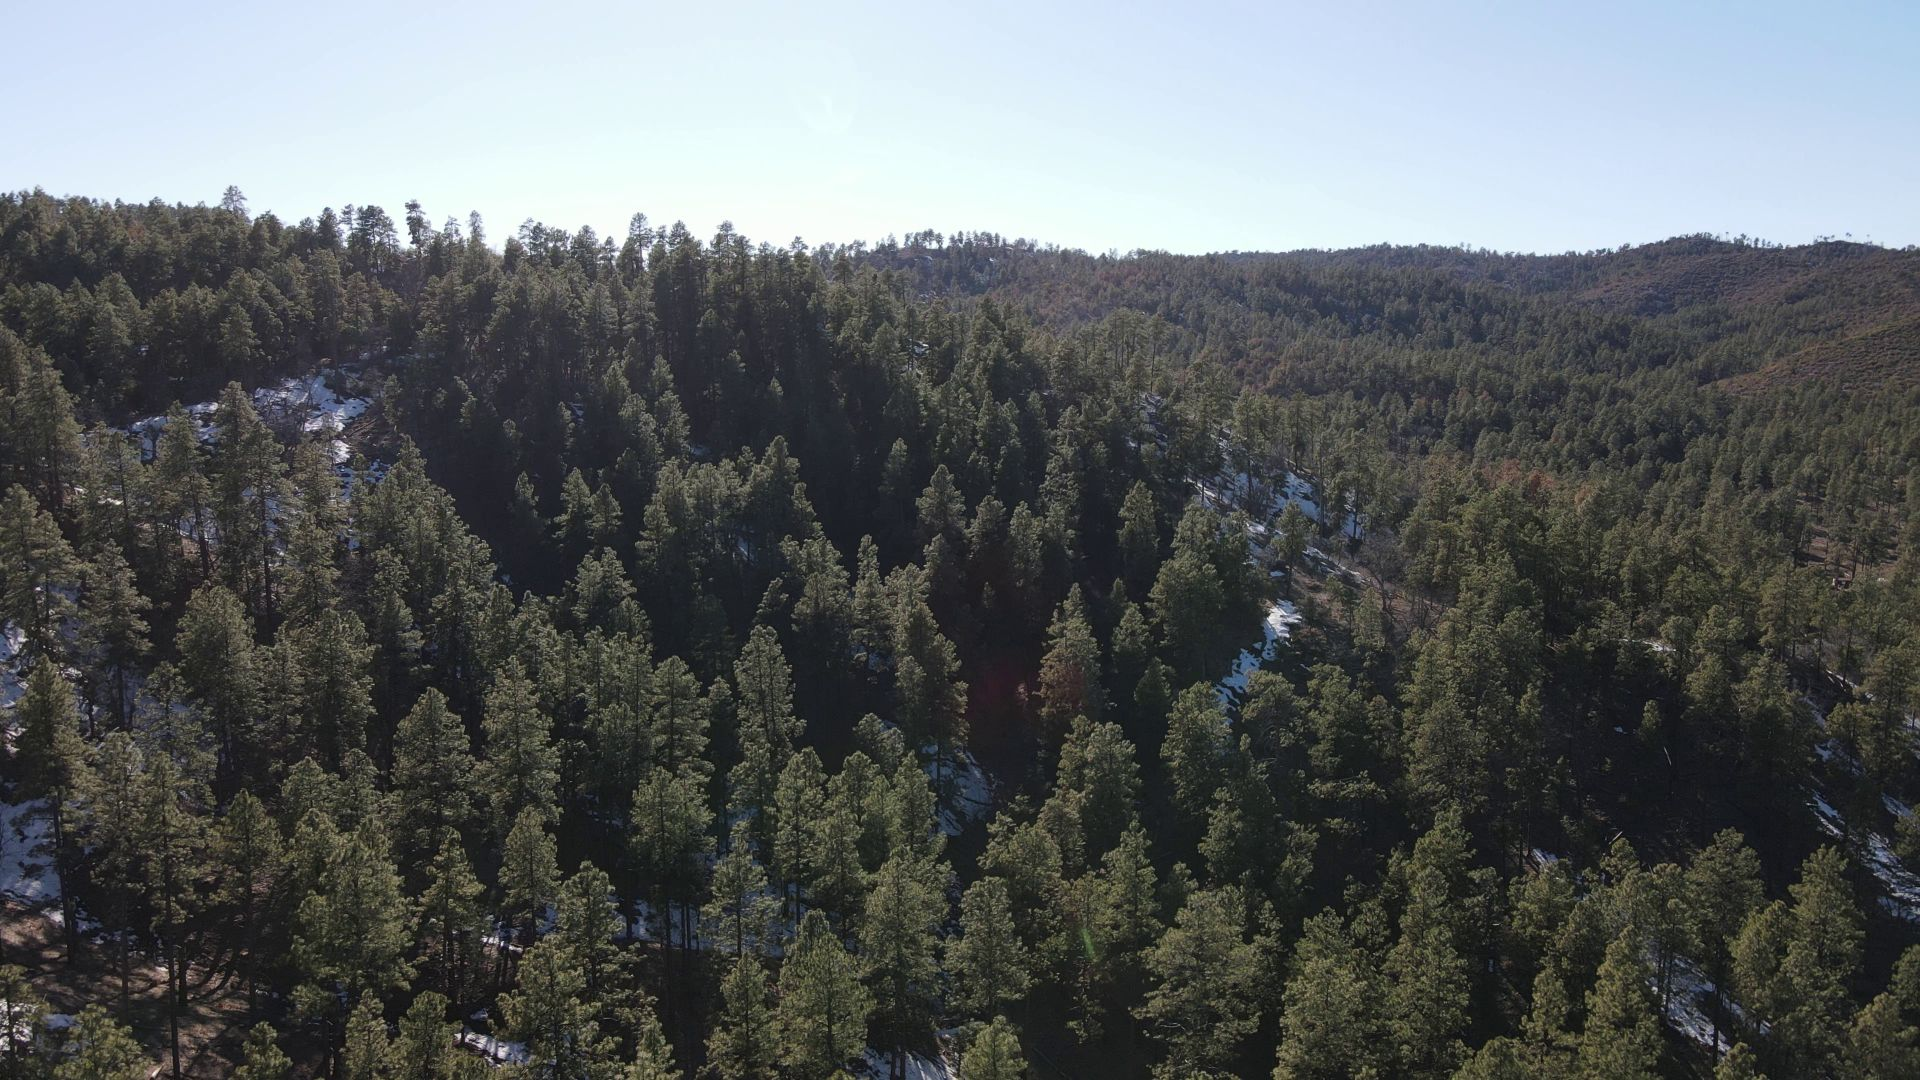 Pine trees at Camp Stein